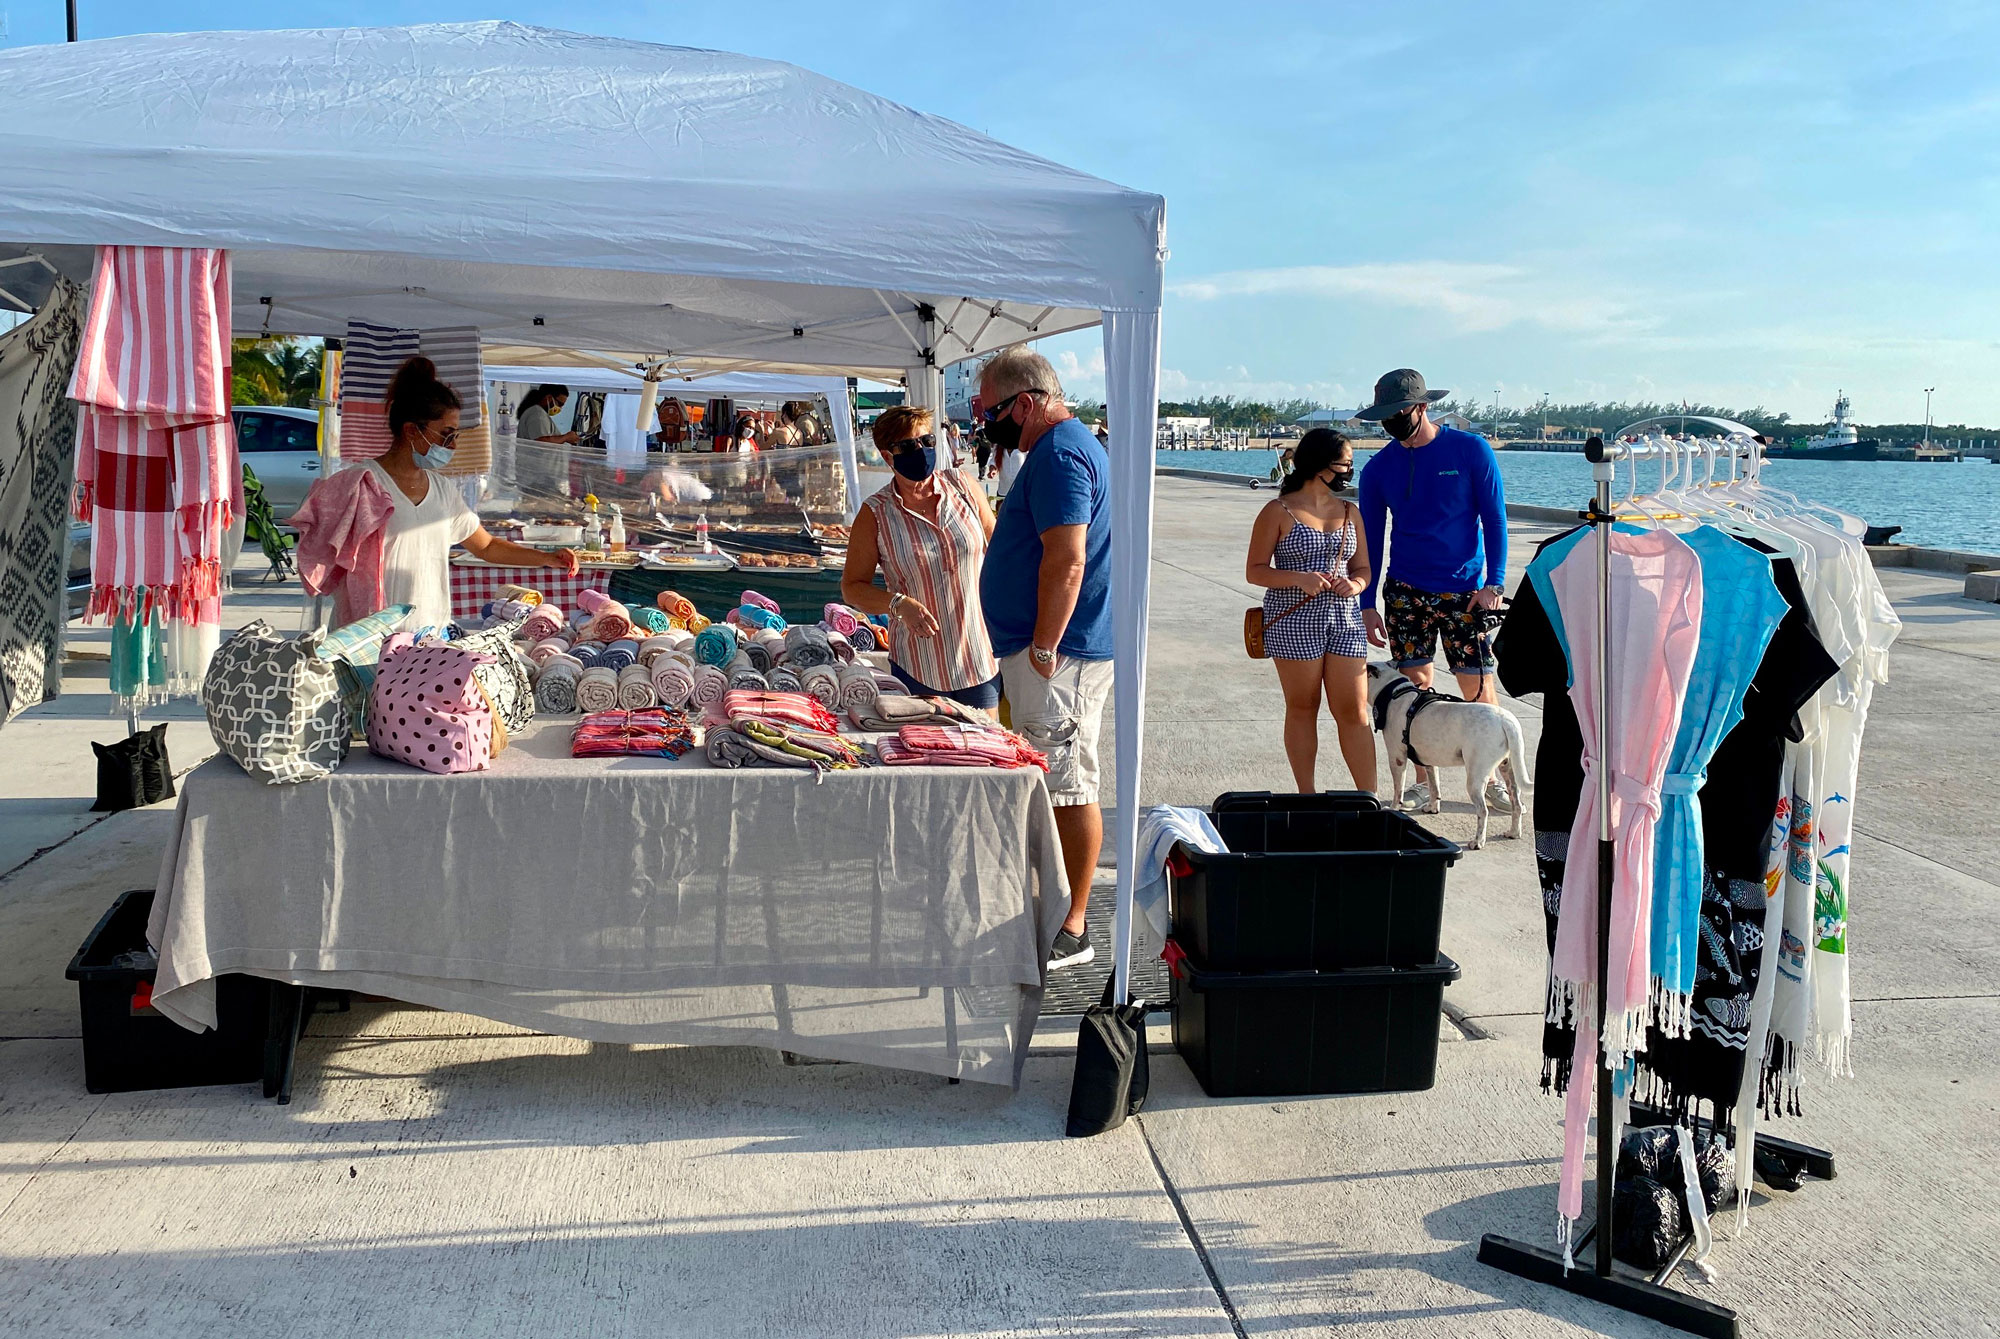 Customers wear masks at the Farmers Market in Key West, Florida on September 17.